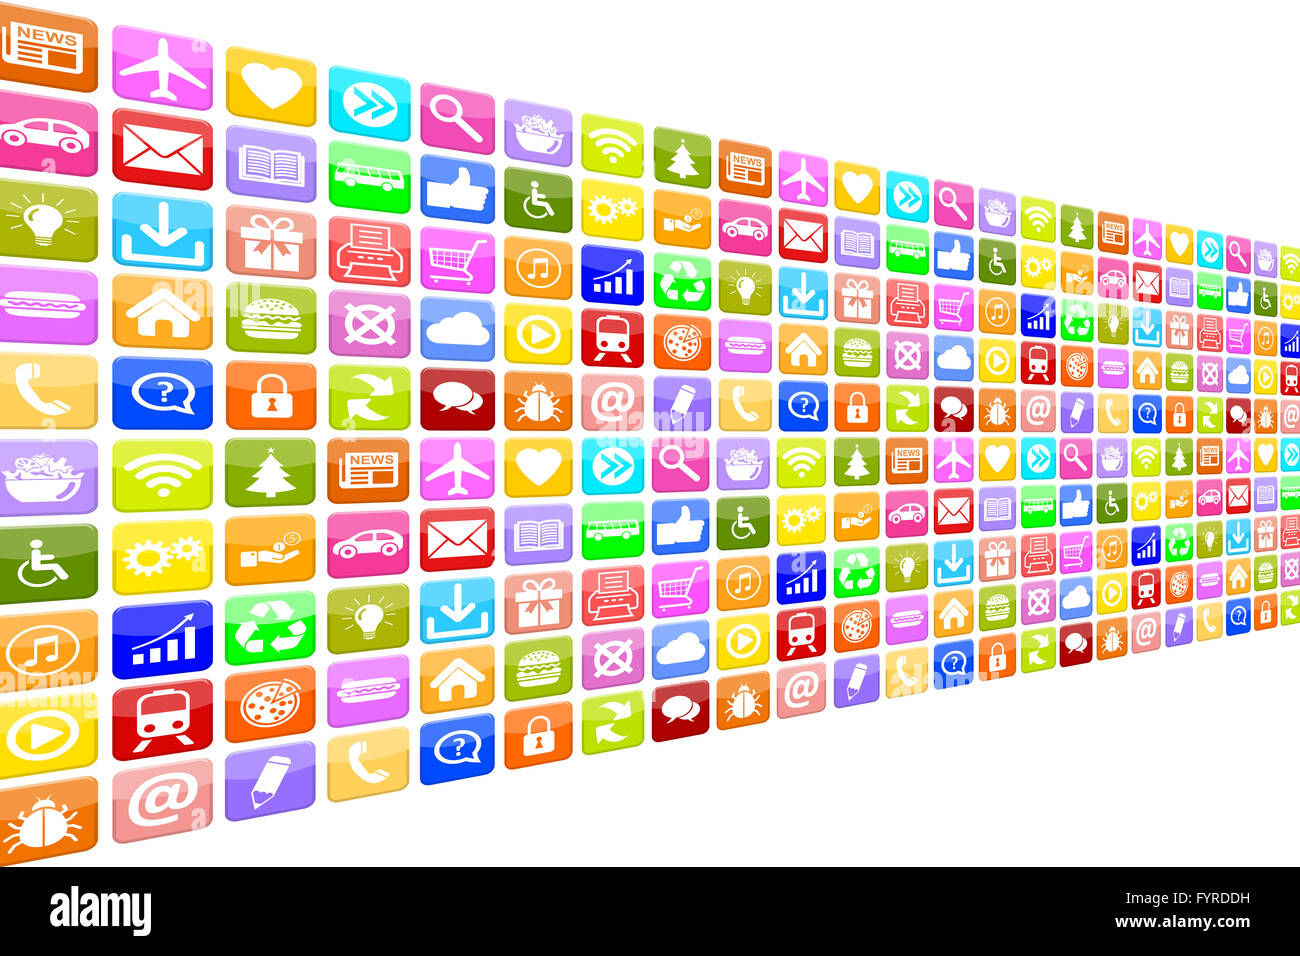 Applikation Apps App Icon Icons Set Für Handy Oder Smartphone Stockbild